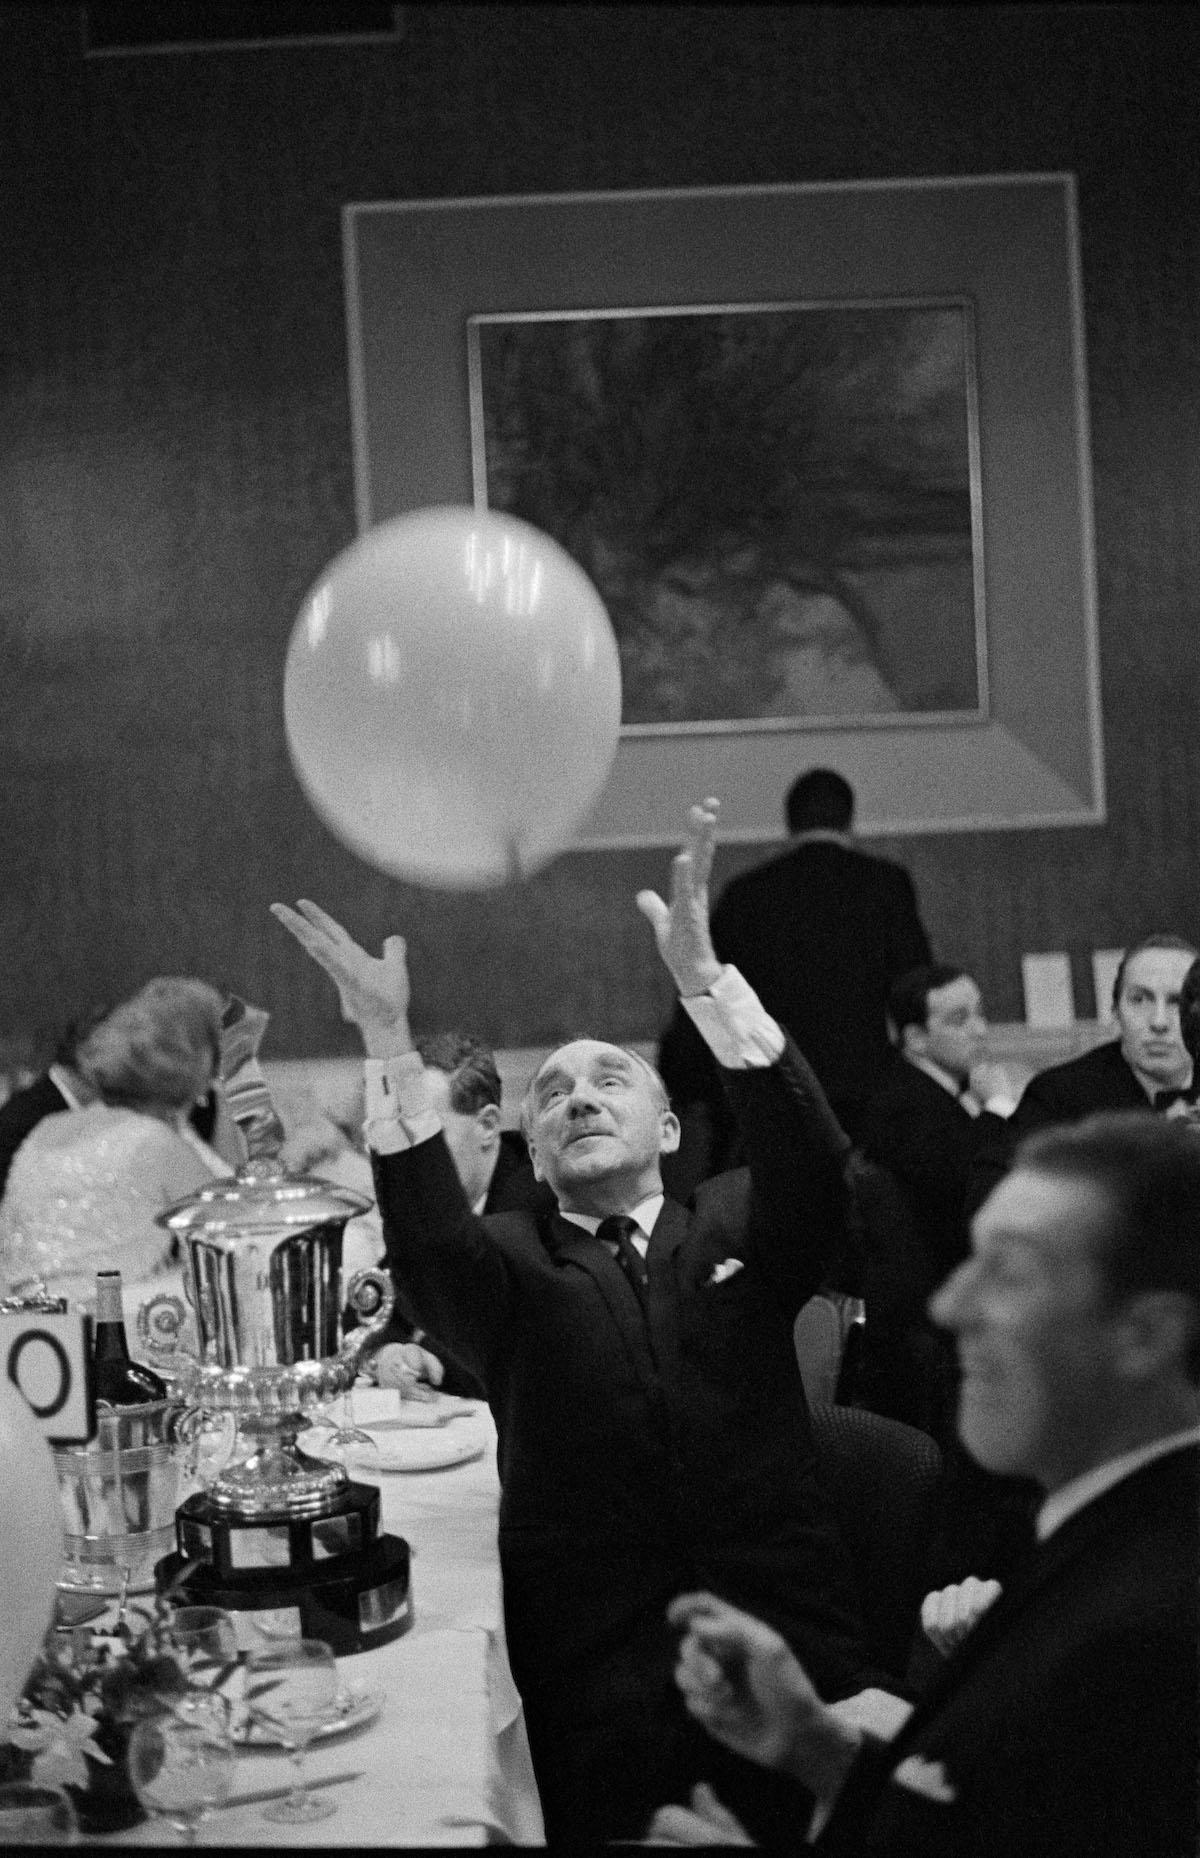 G.B. SCOTLAND. Edinborough. Retired gentleman at the MG Car owners Ball. 1967.